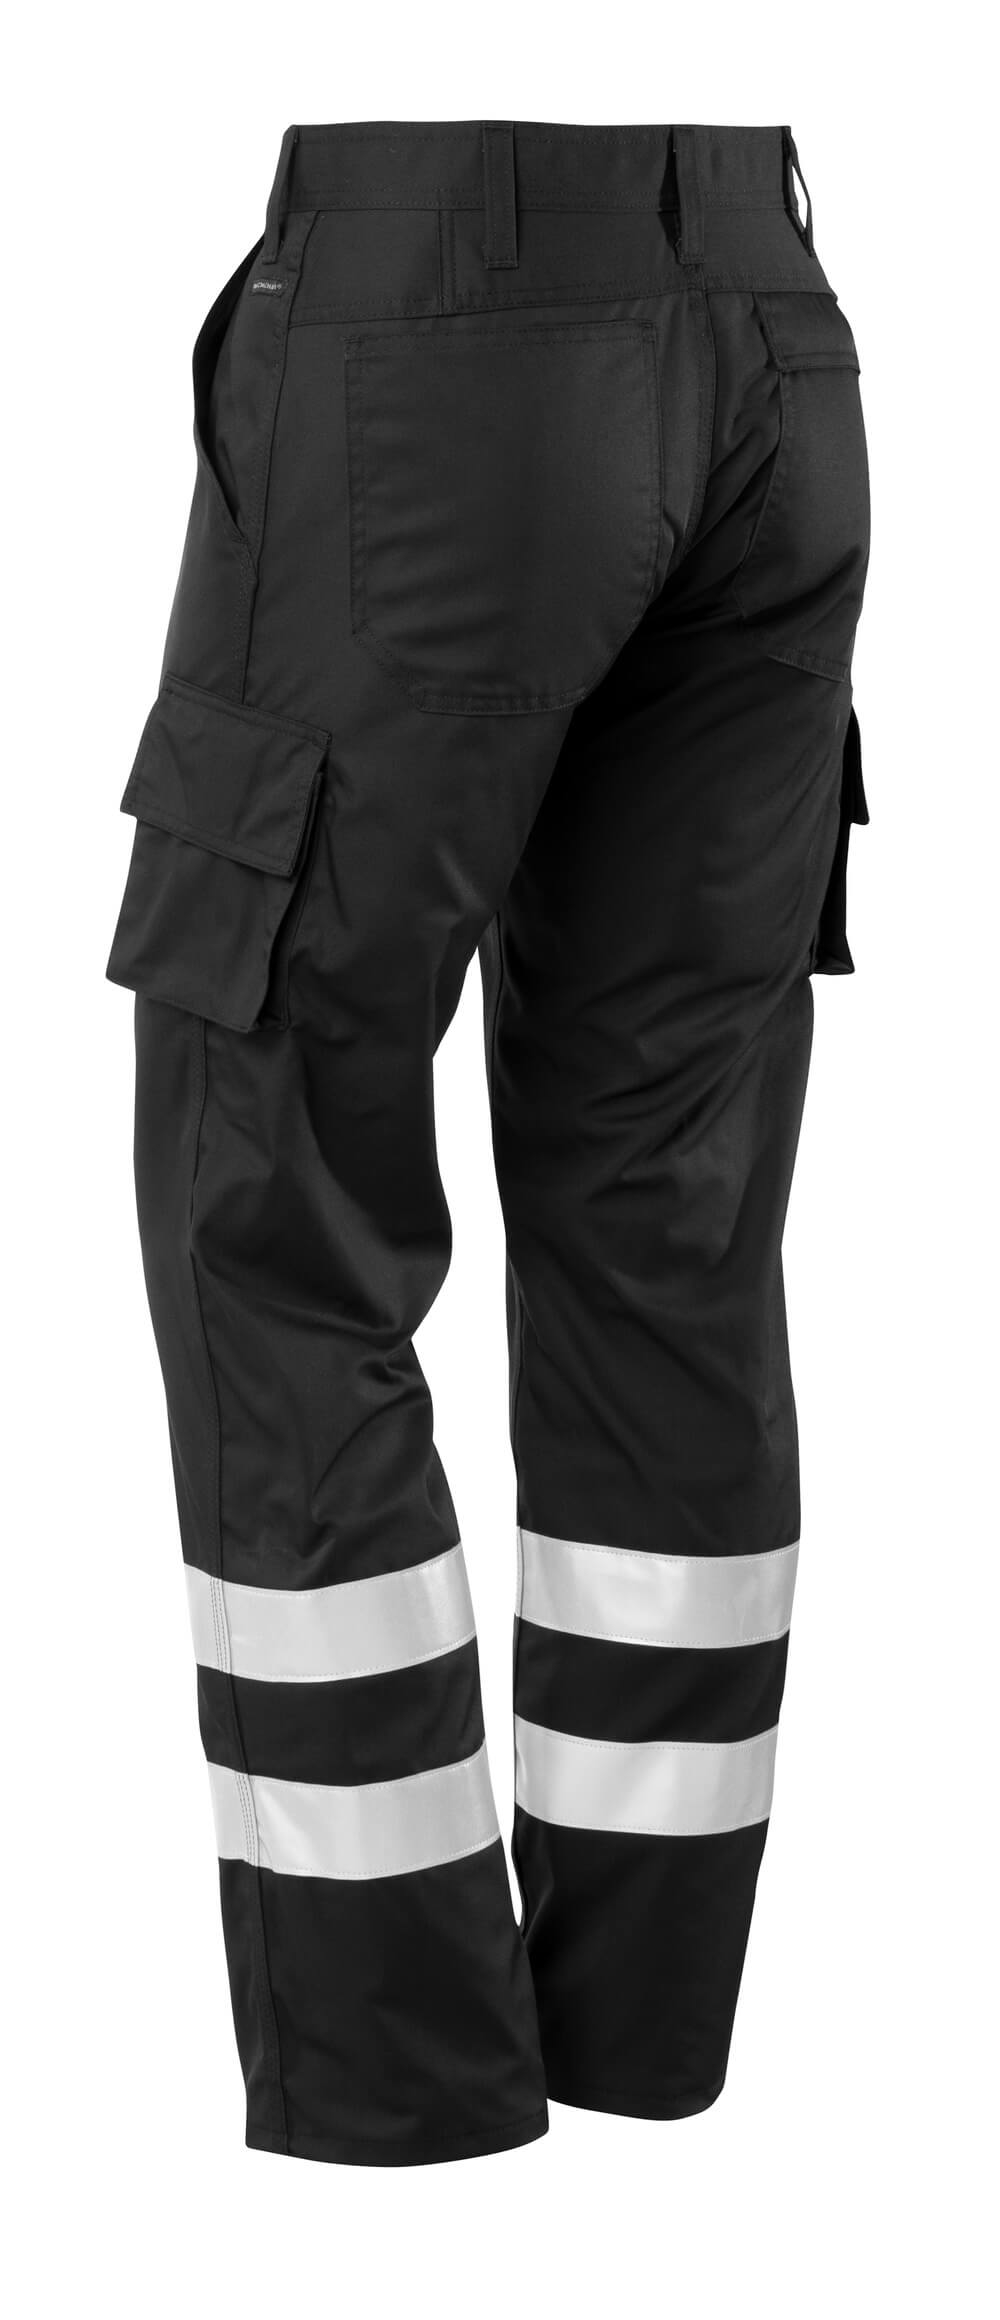 Service Trousers with reflective tape